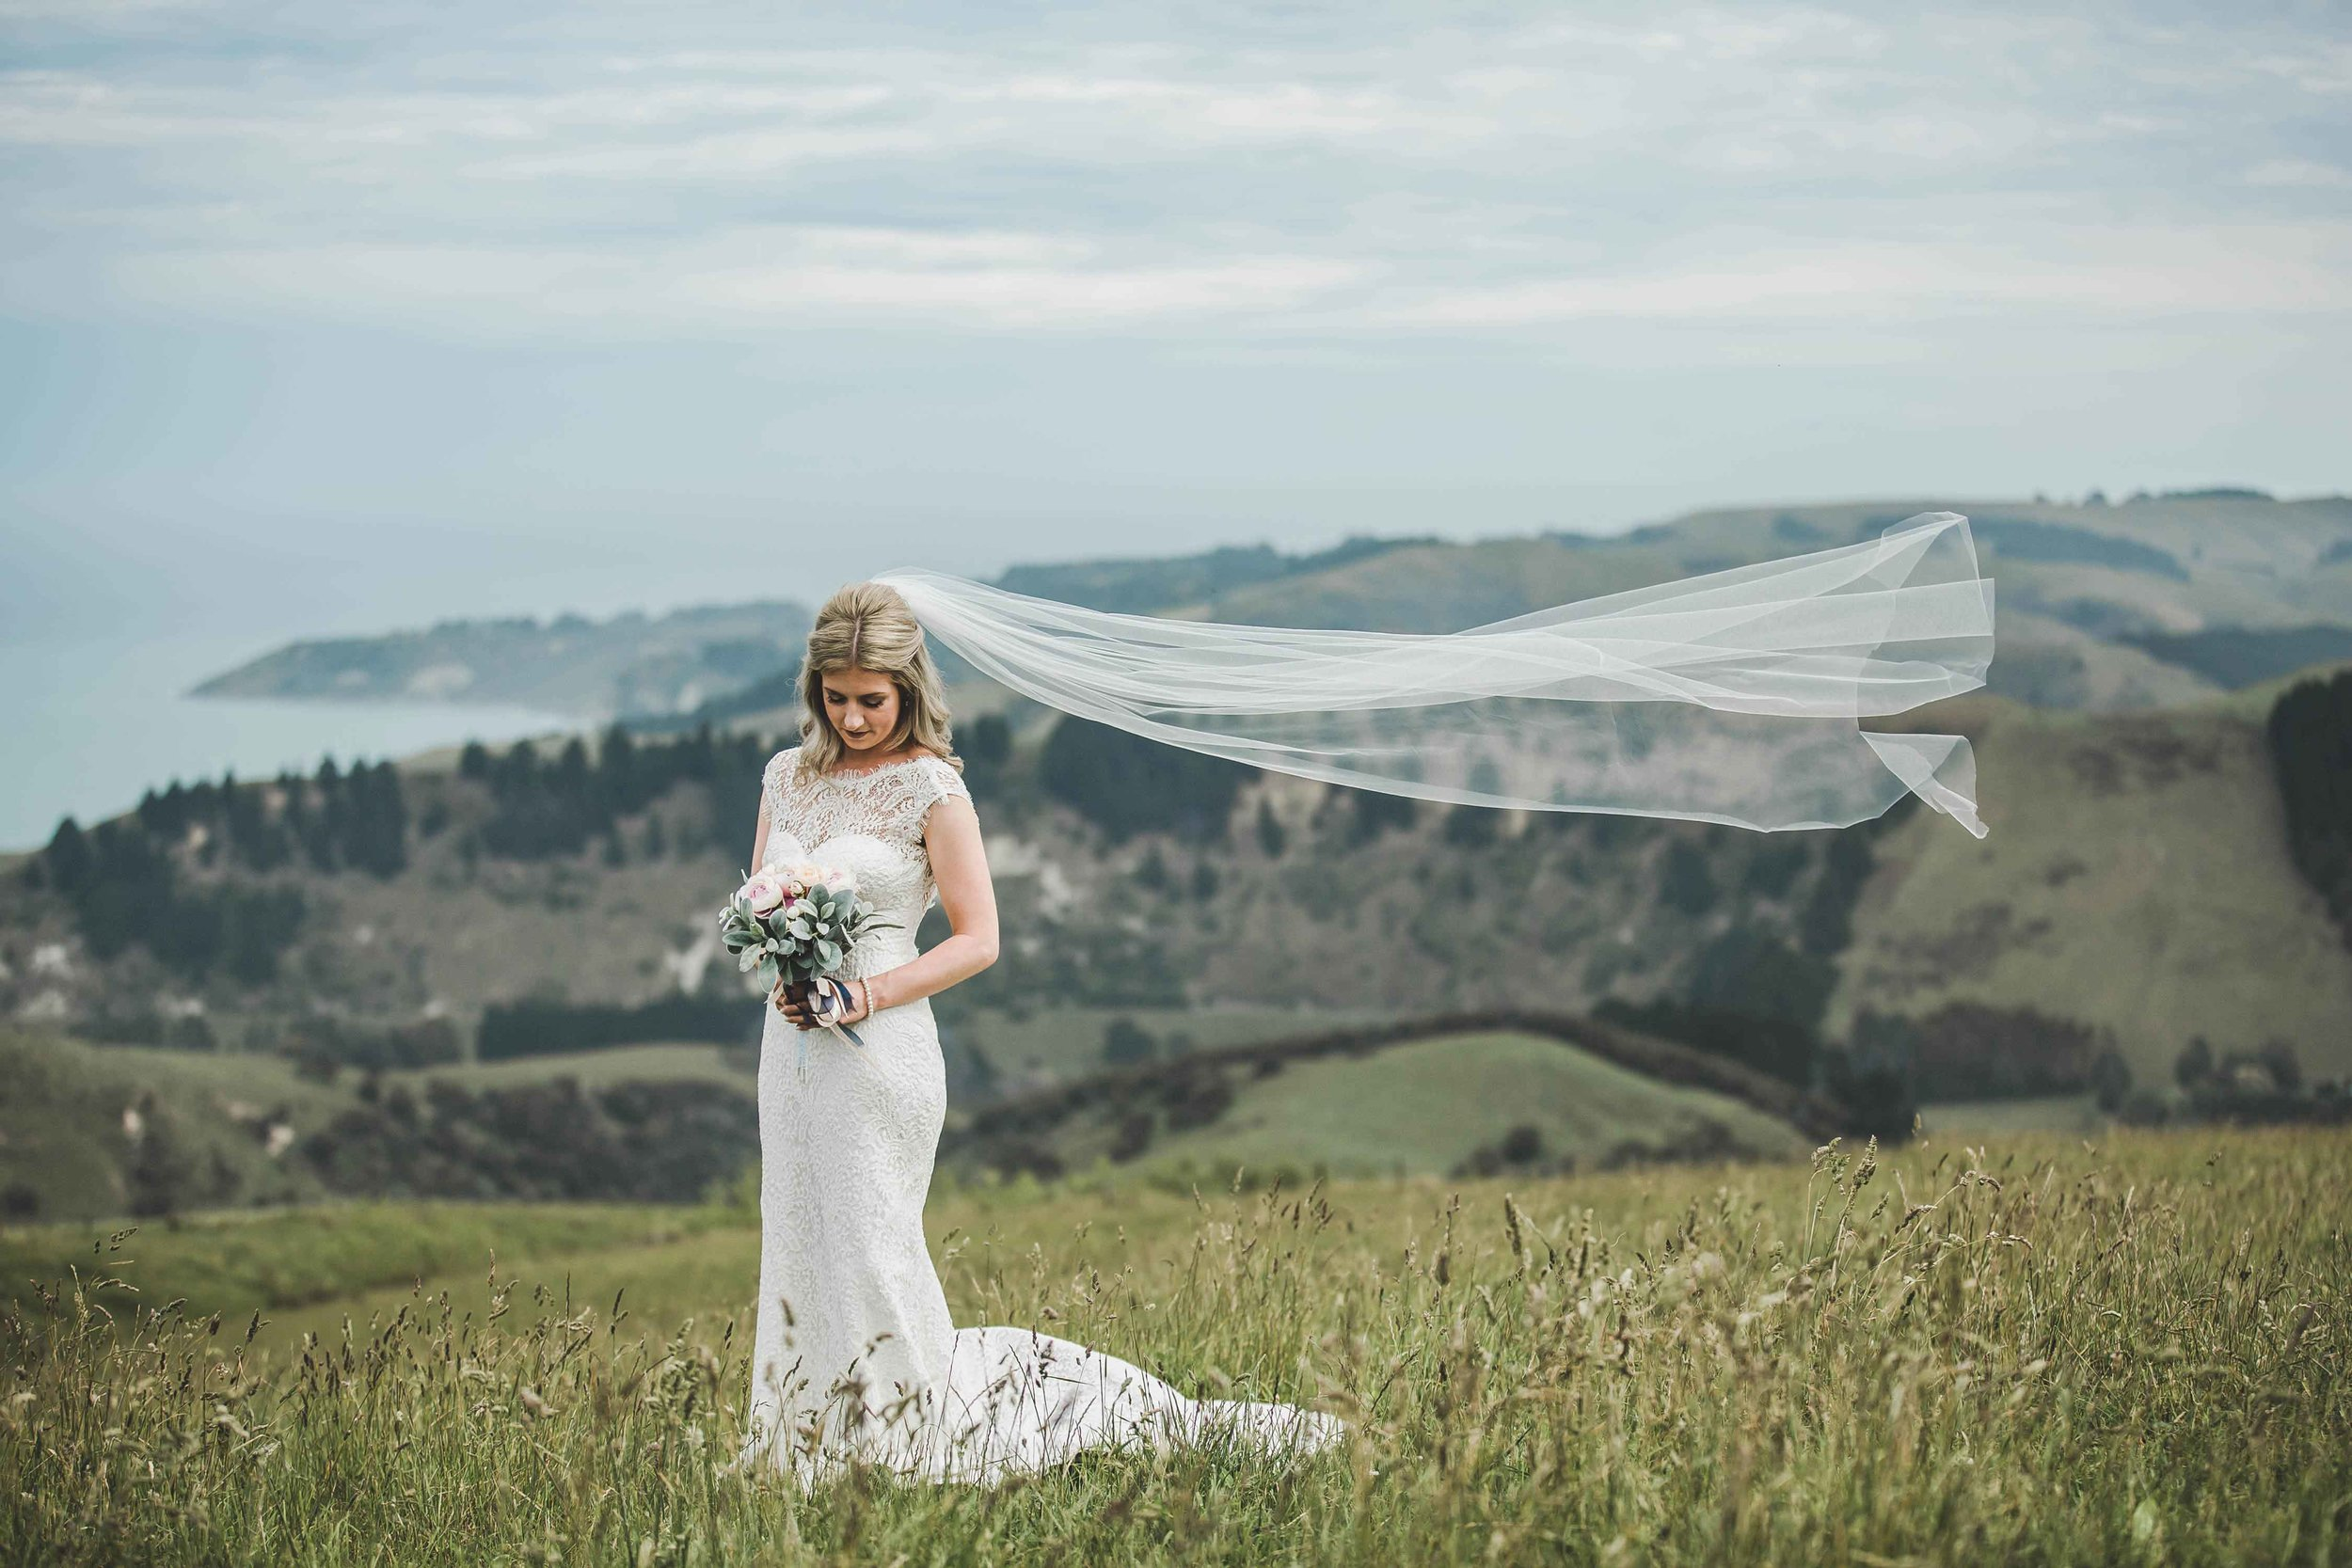 we support FOREST & Bird - Every wedding we donate $50 to Forest & Bird. Together we are helping to protect and defend New Zealand's natural environment and wildlife.